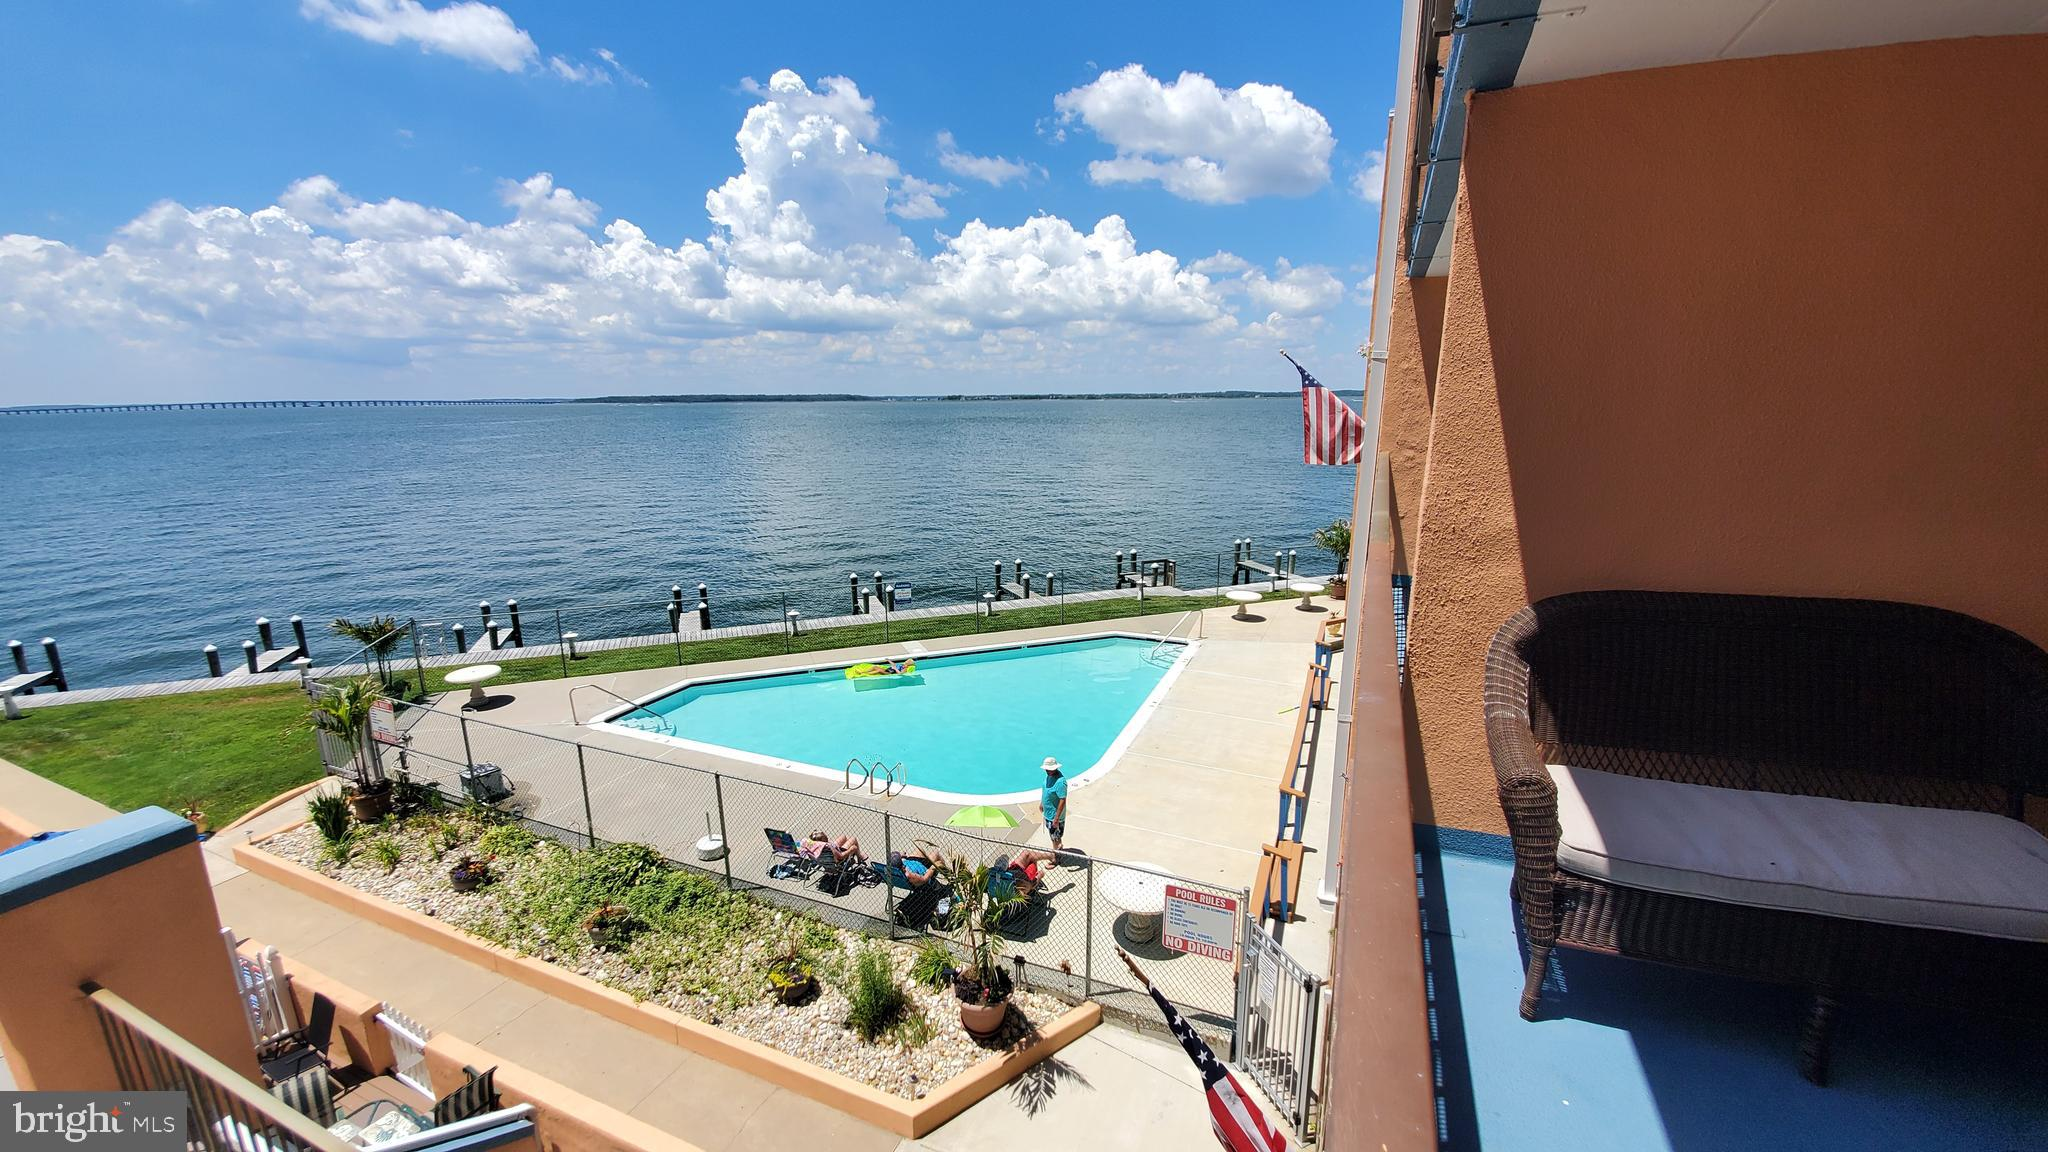 Direct Bay Front masonry condo with amazing bay views from living room and kitchen! Enjoy the sunset